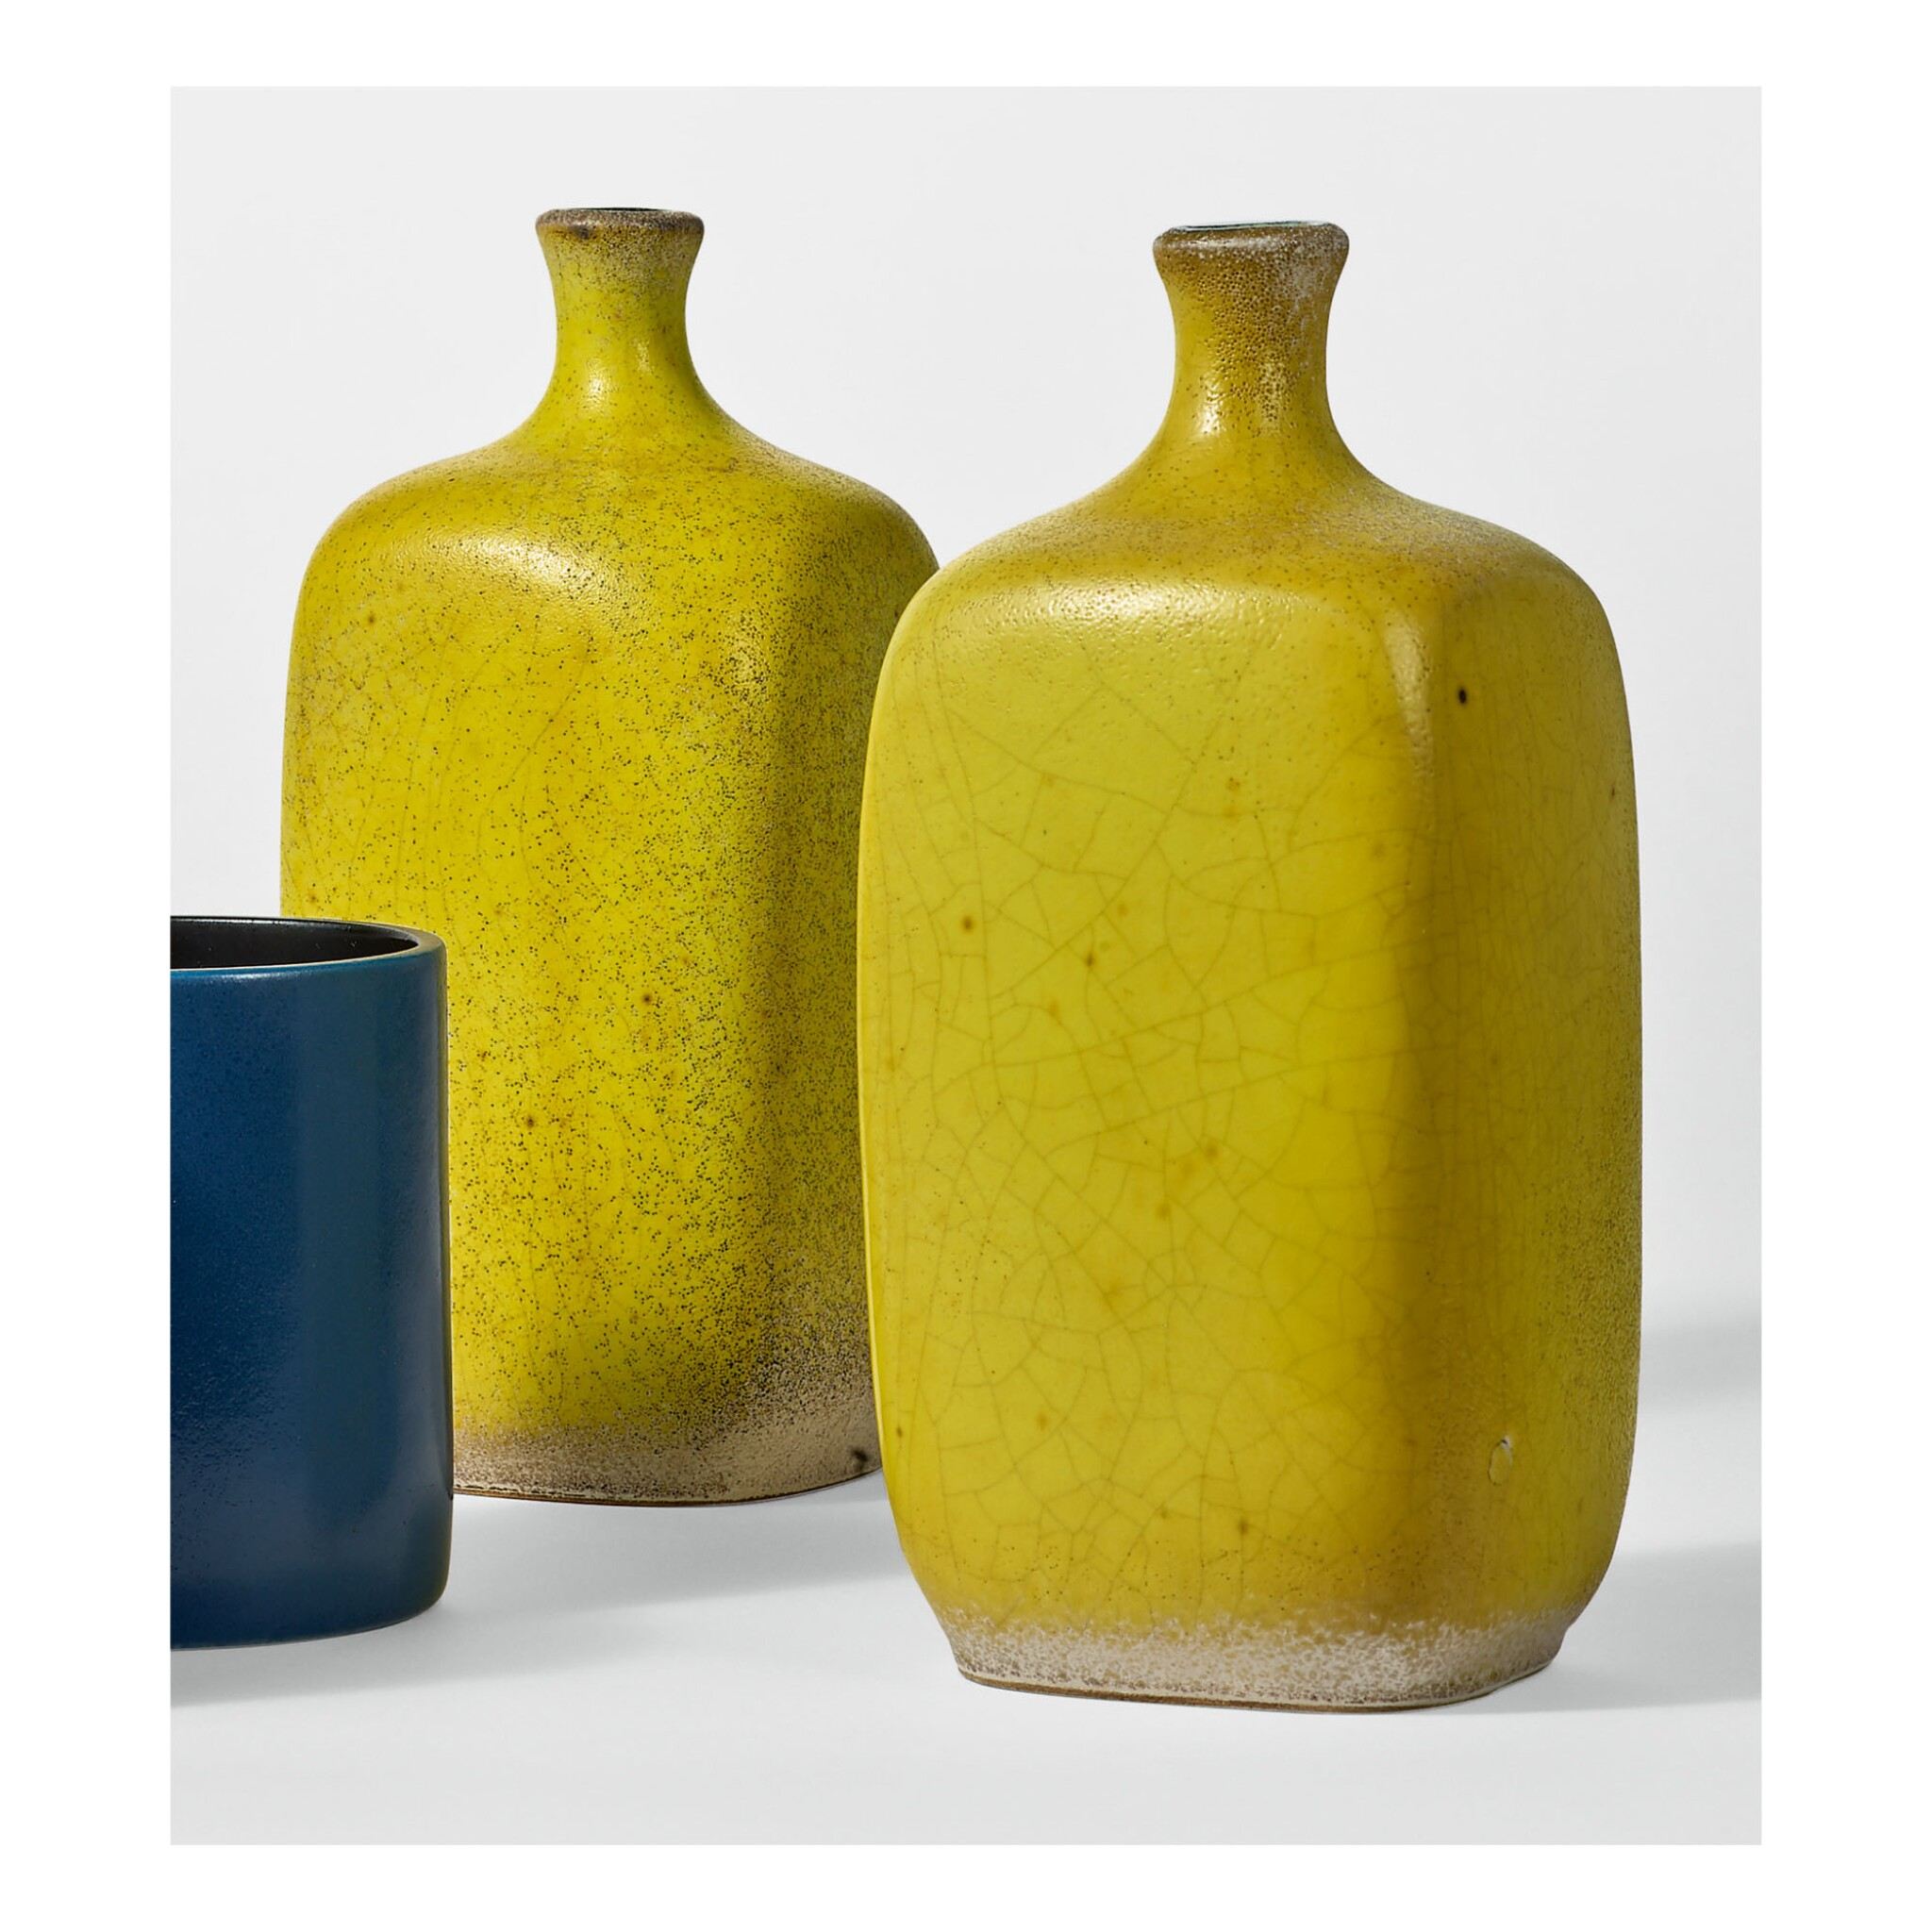 View full screen - View 1 of Lot 217. GEORGES JOUVE | PAIR OF VASES.